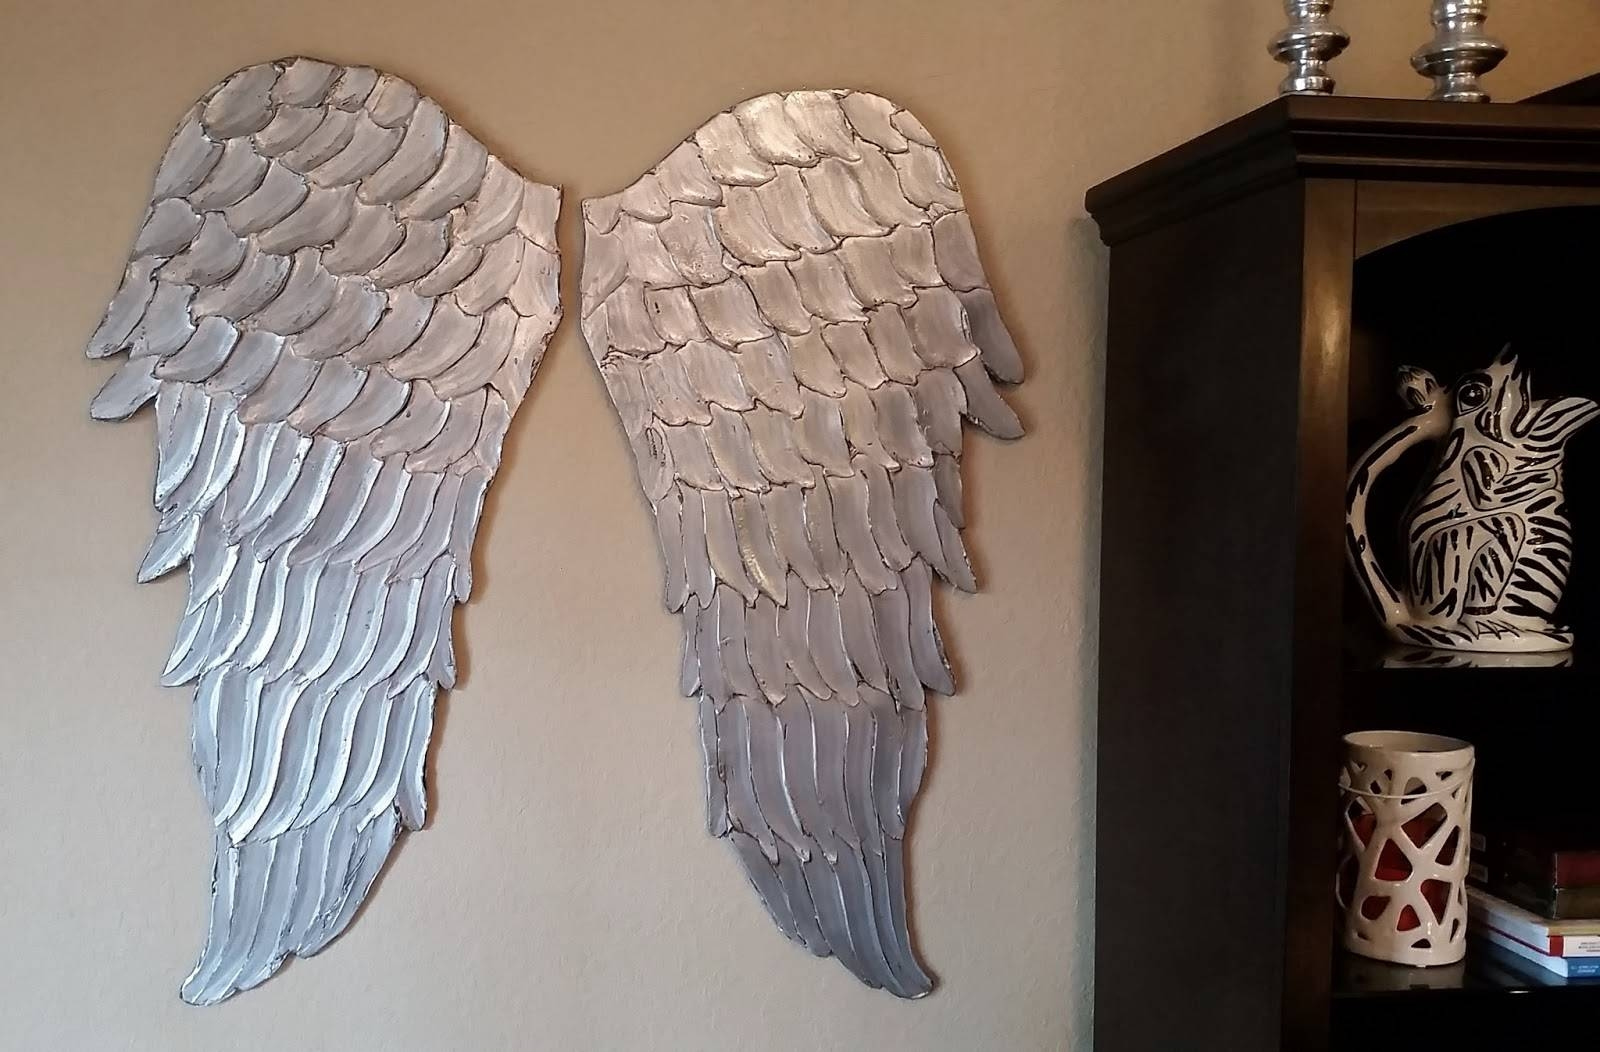 Wood Angel Wings Wall Art, Large Carved Look Wooden Angel Wings Intended For Recent Angel Wings Wall Art (View 20 of 20)